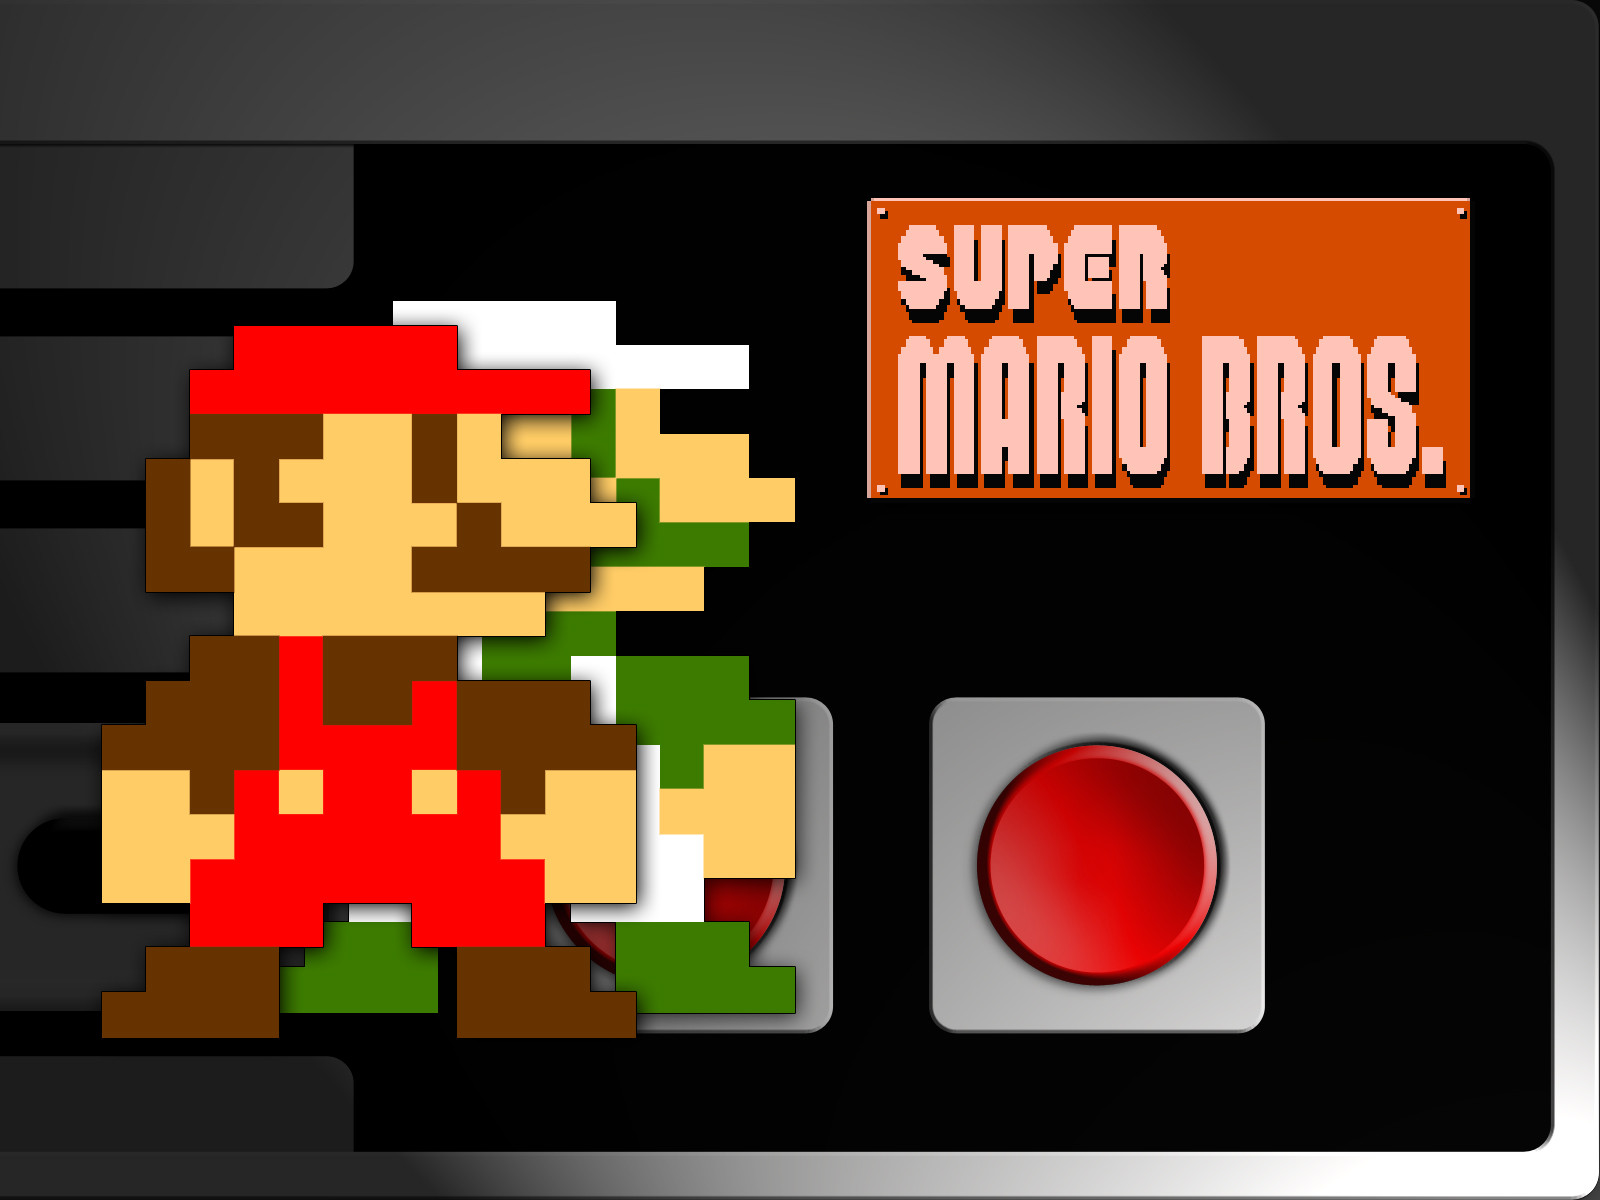 how to get super mario bros on snes classic